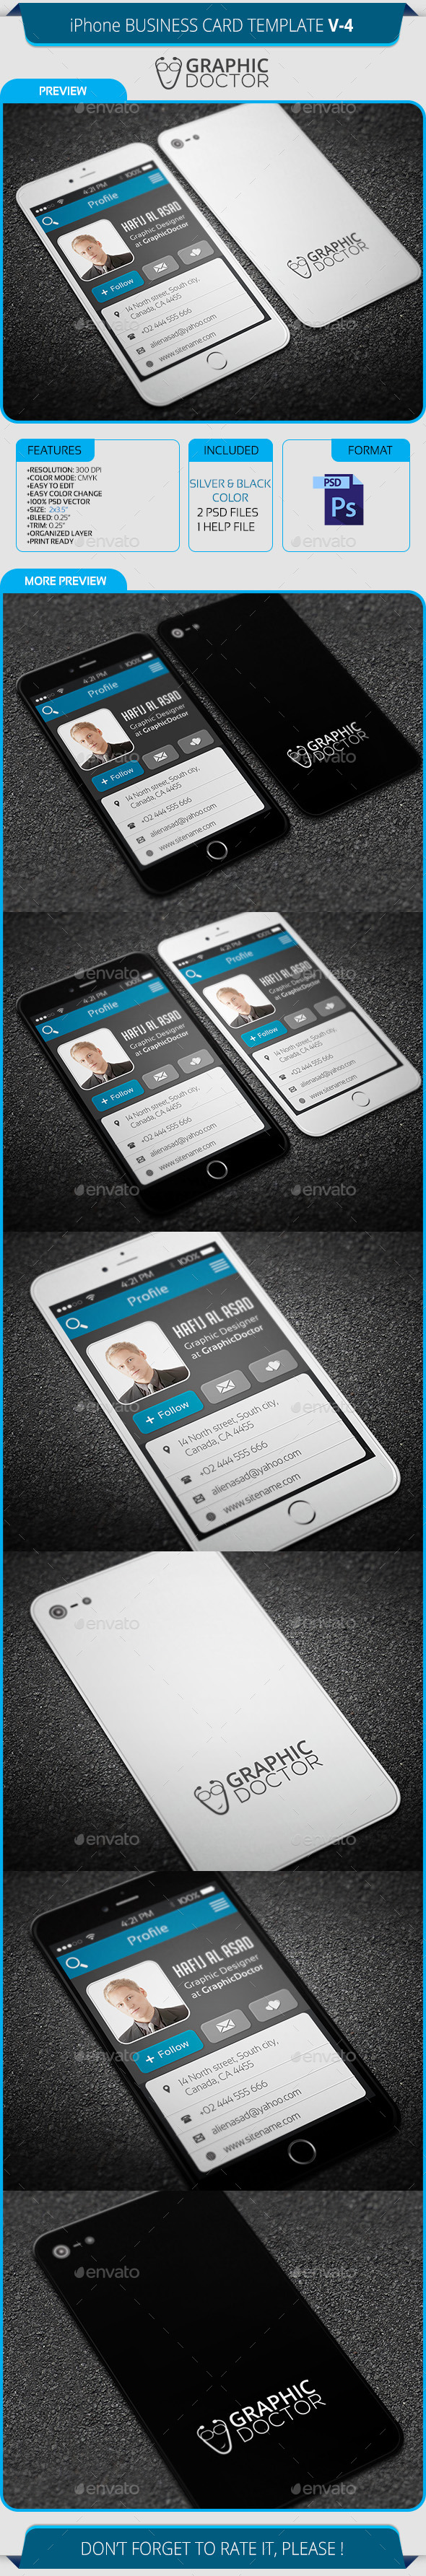 iPhone Business Card Template V-4 by GraphicDoctor | GraphicRiver